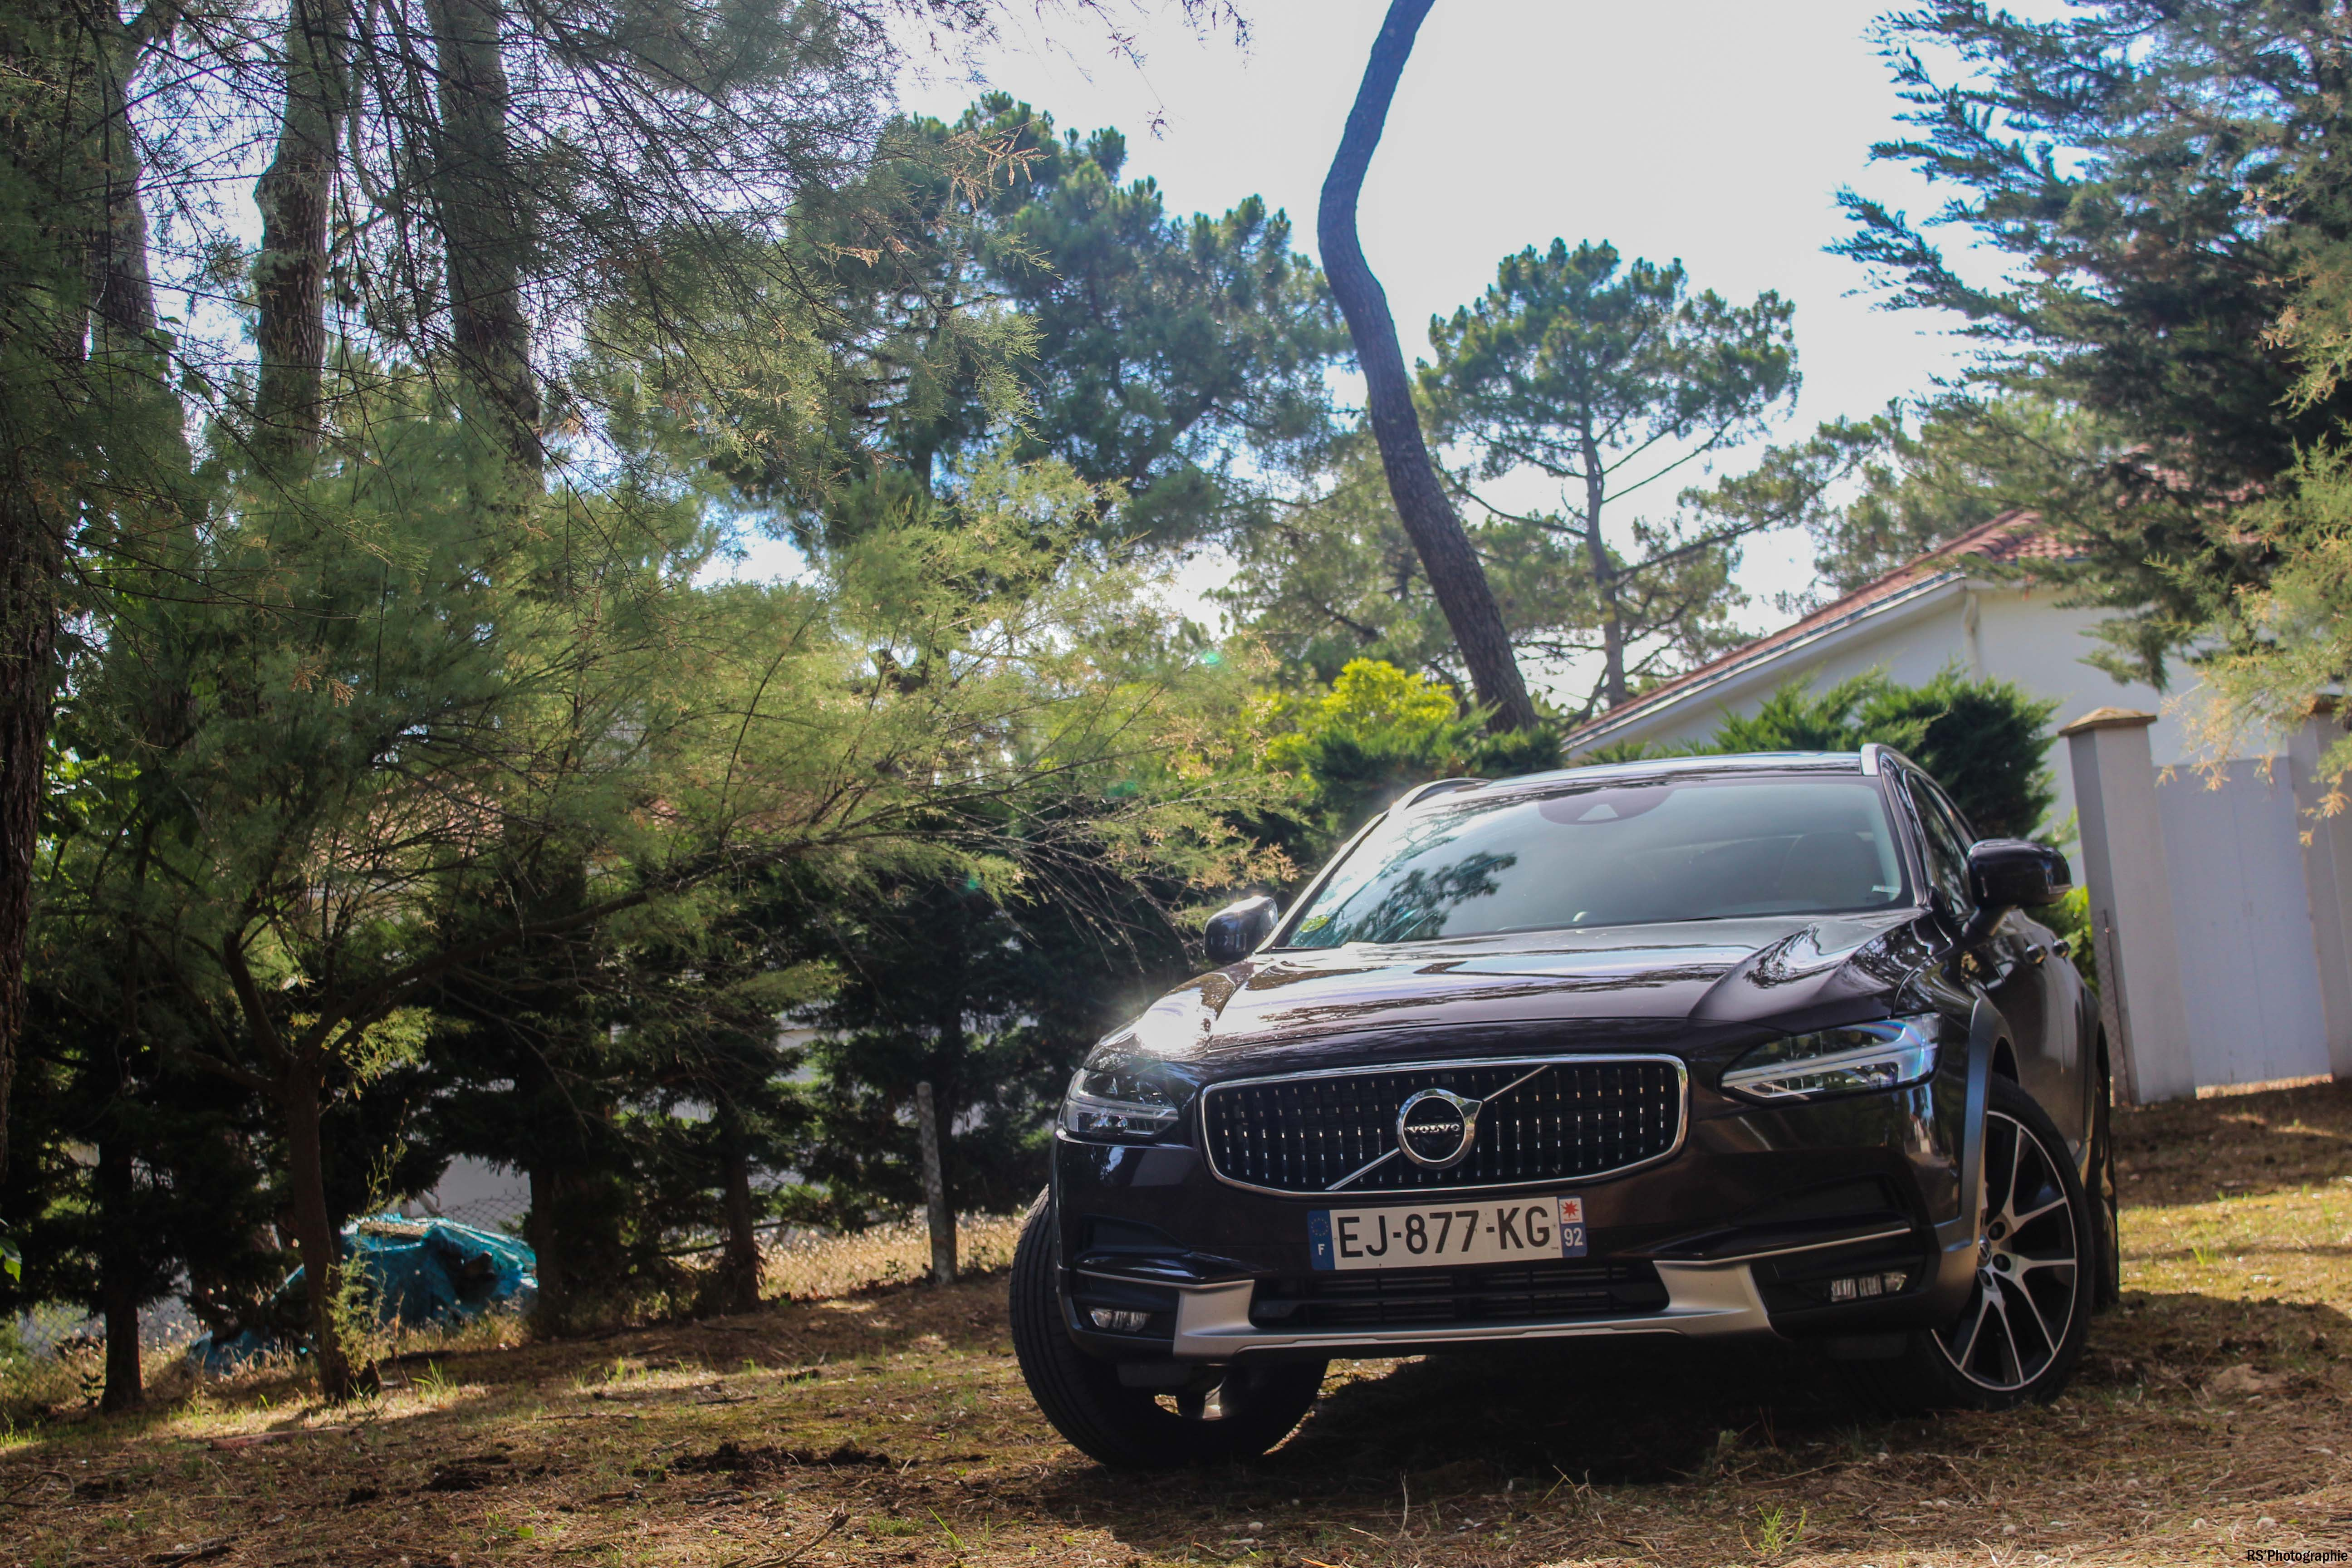 VolvoV90CrossCountry10-volvo-v90-d5-crosscountry-avant-front-Arnaud Demasier-RSPhotographie